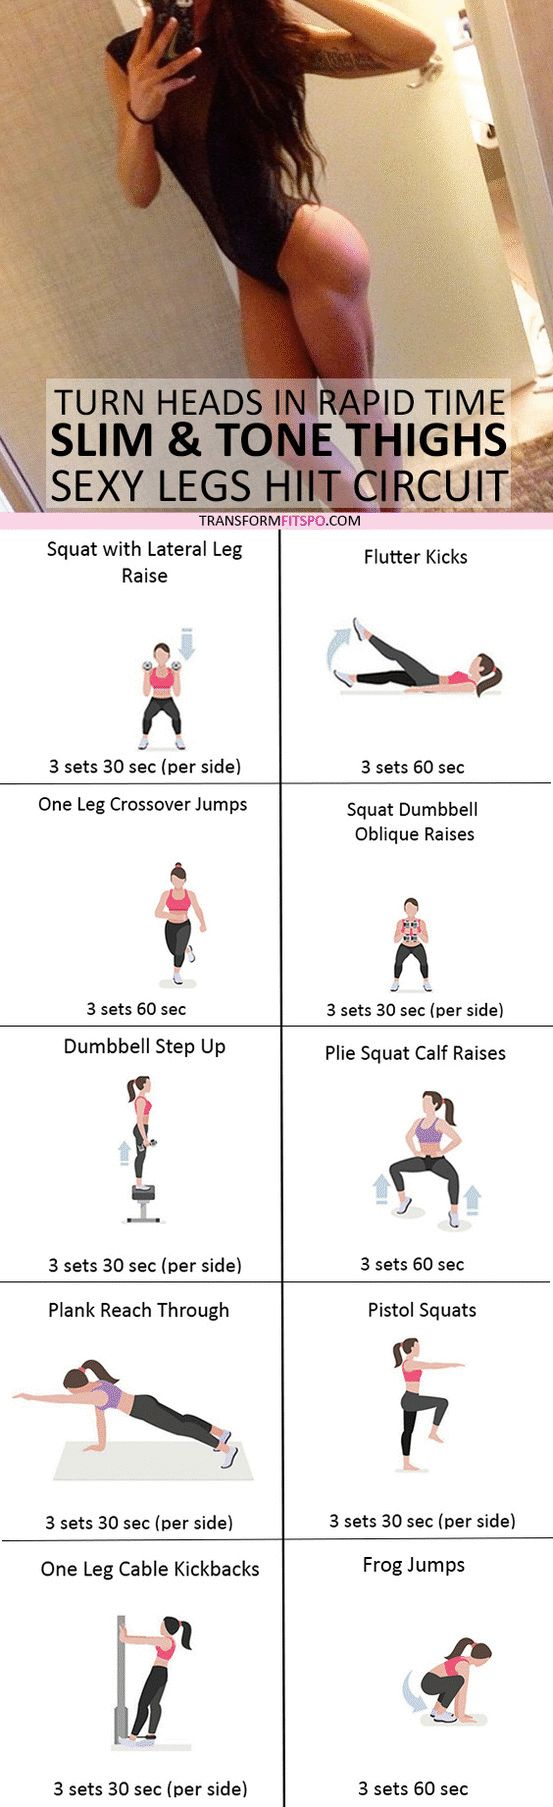 #womensworkout #workout #femalefitness Repin and share if this workout gave you slim and toned thighs! Click the pin for the full workout.